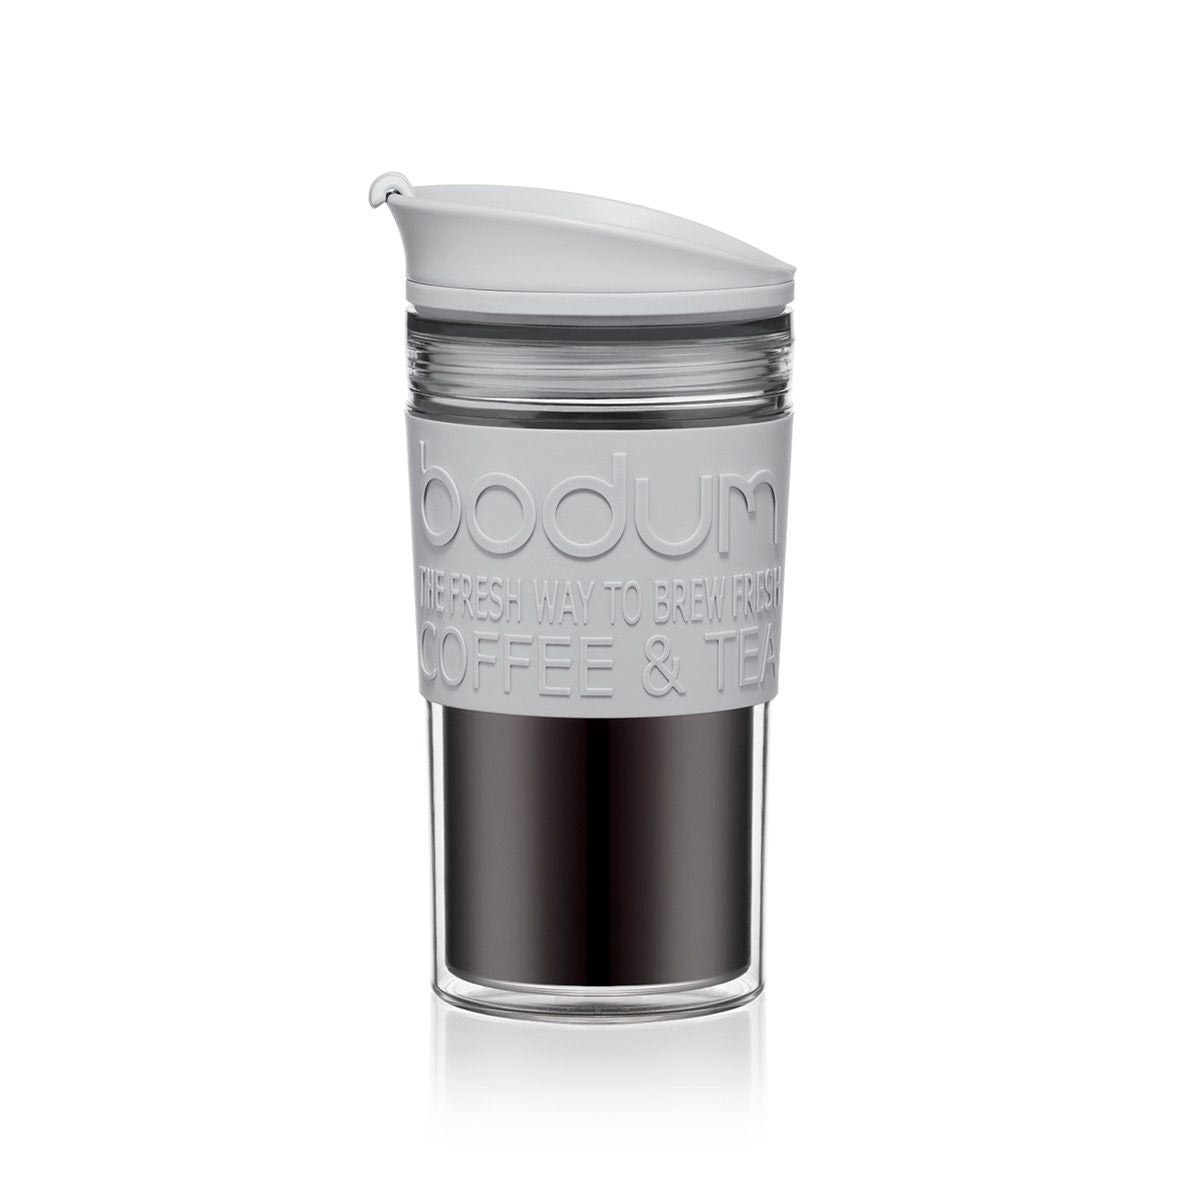 Bodum Travel Mug Acrylic 12oz - Shadow Grey - NEW 2020 Collection